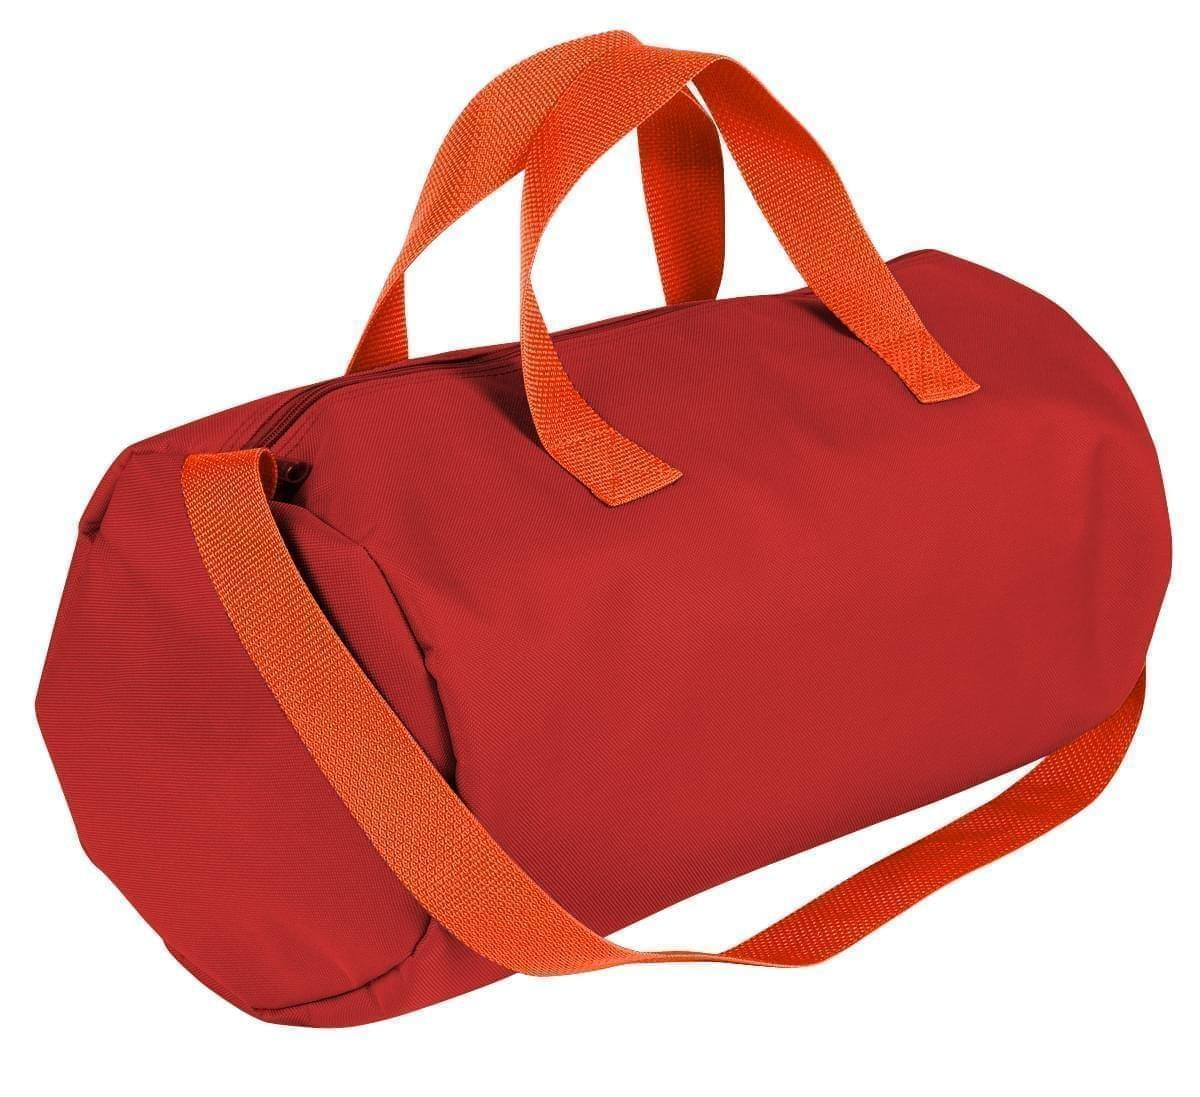 USA Made Nylon Poly Gym Roll Bags, Red-Orange, ROCX31AAZ0